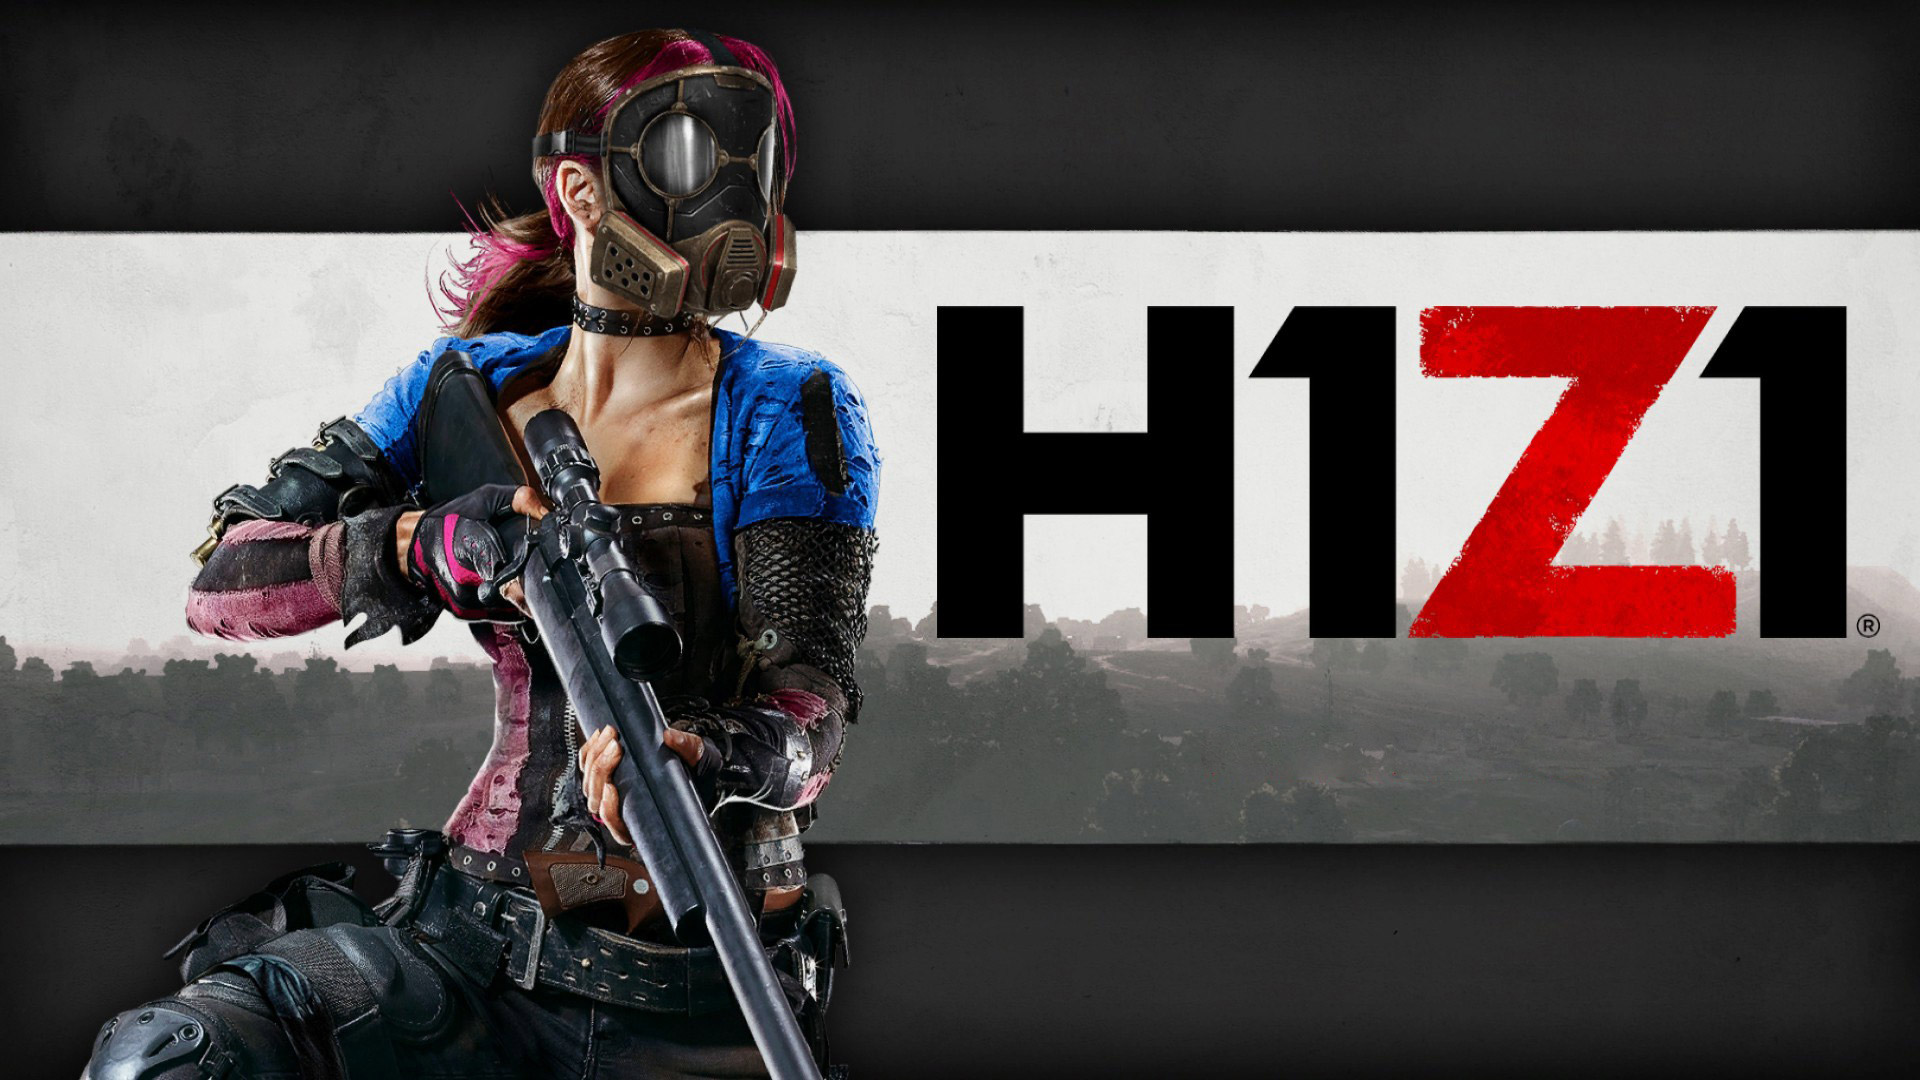 Free H1Z1 Wallpaper in 1920x1080